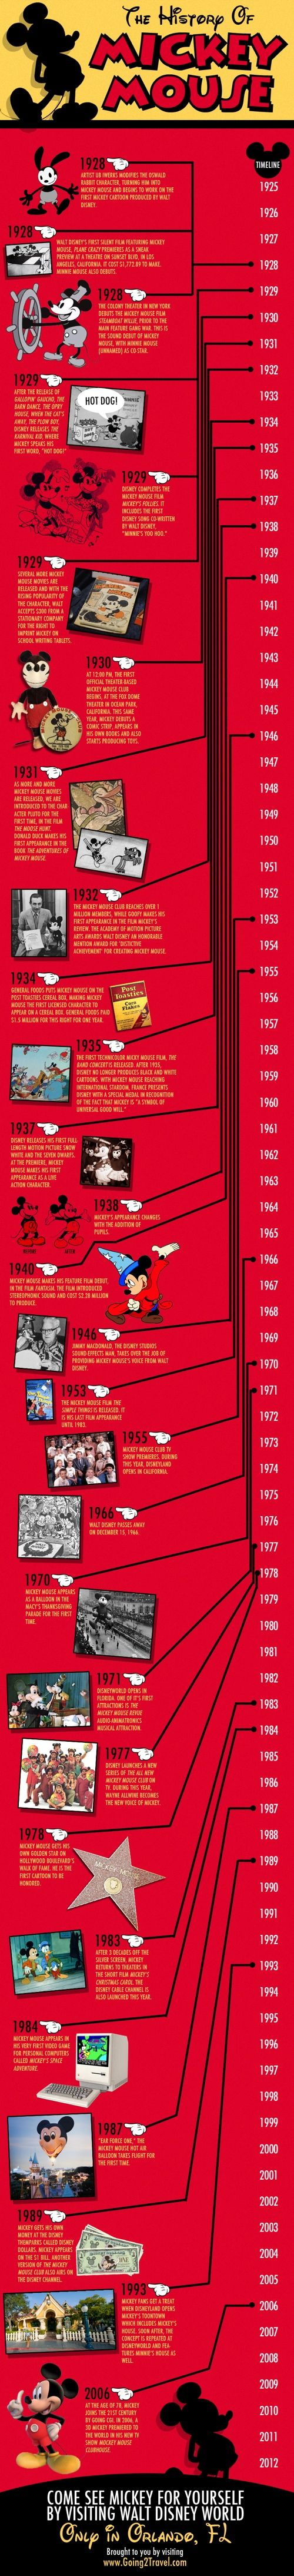 Mickey Mouse hasn't just survived for 80 years, he has thrived. The History of Mickey...